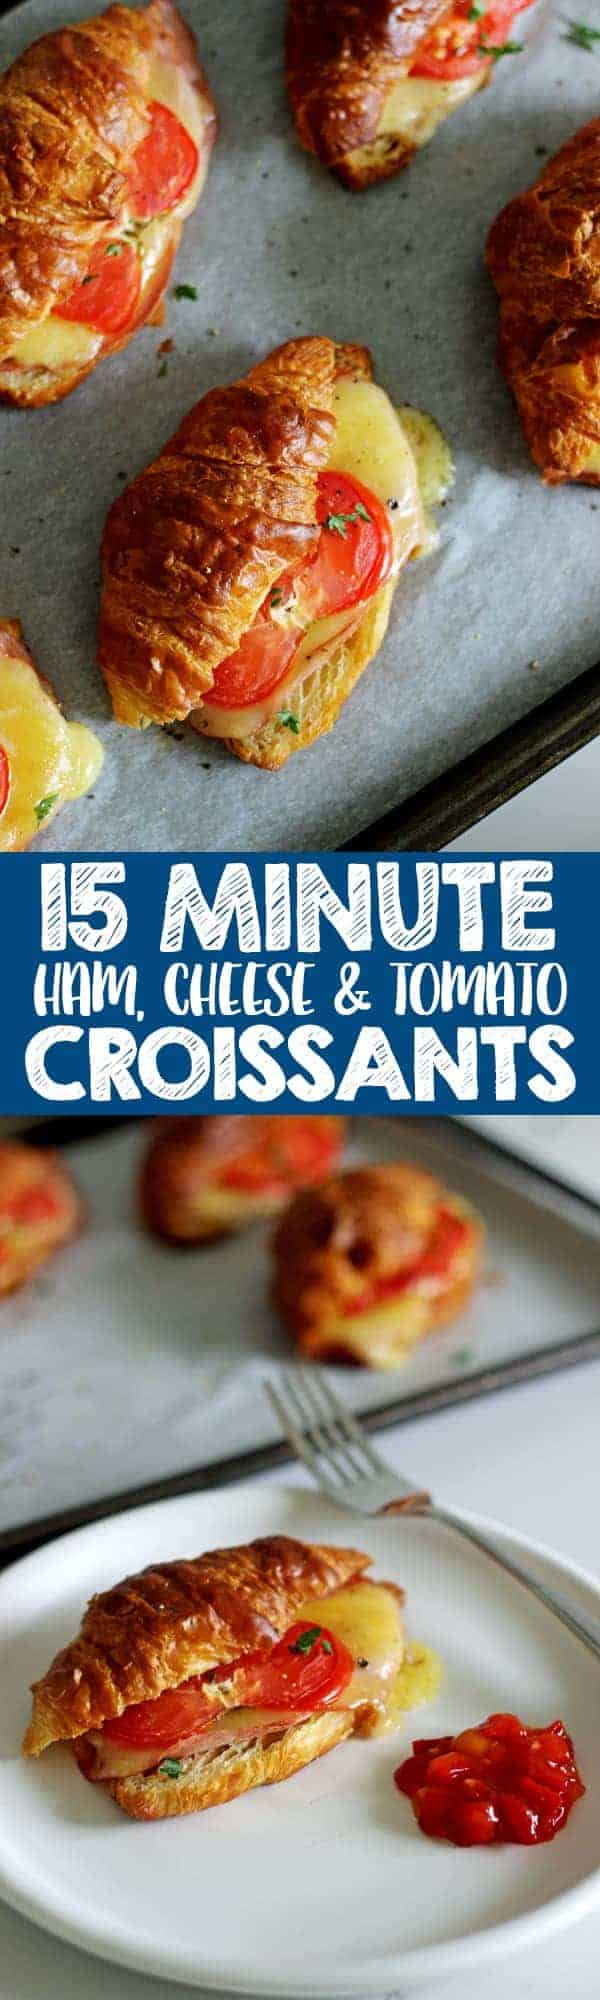 The easiest and tastiest 15 Minute Ham, Cheese & Tomato Croissants - they come together and are ready to eat in only 15 minutes! Perfect for Easter brunch or just any old weekend breakfast! #easter #easterbrunch #easymeal #15minutemeal #breakfast #croissants   thekiwicountrygirl.com